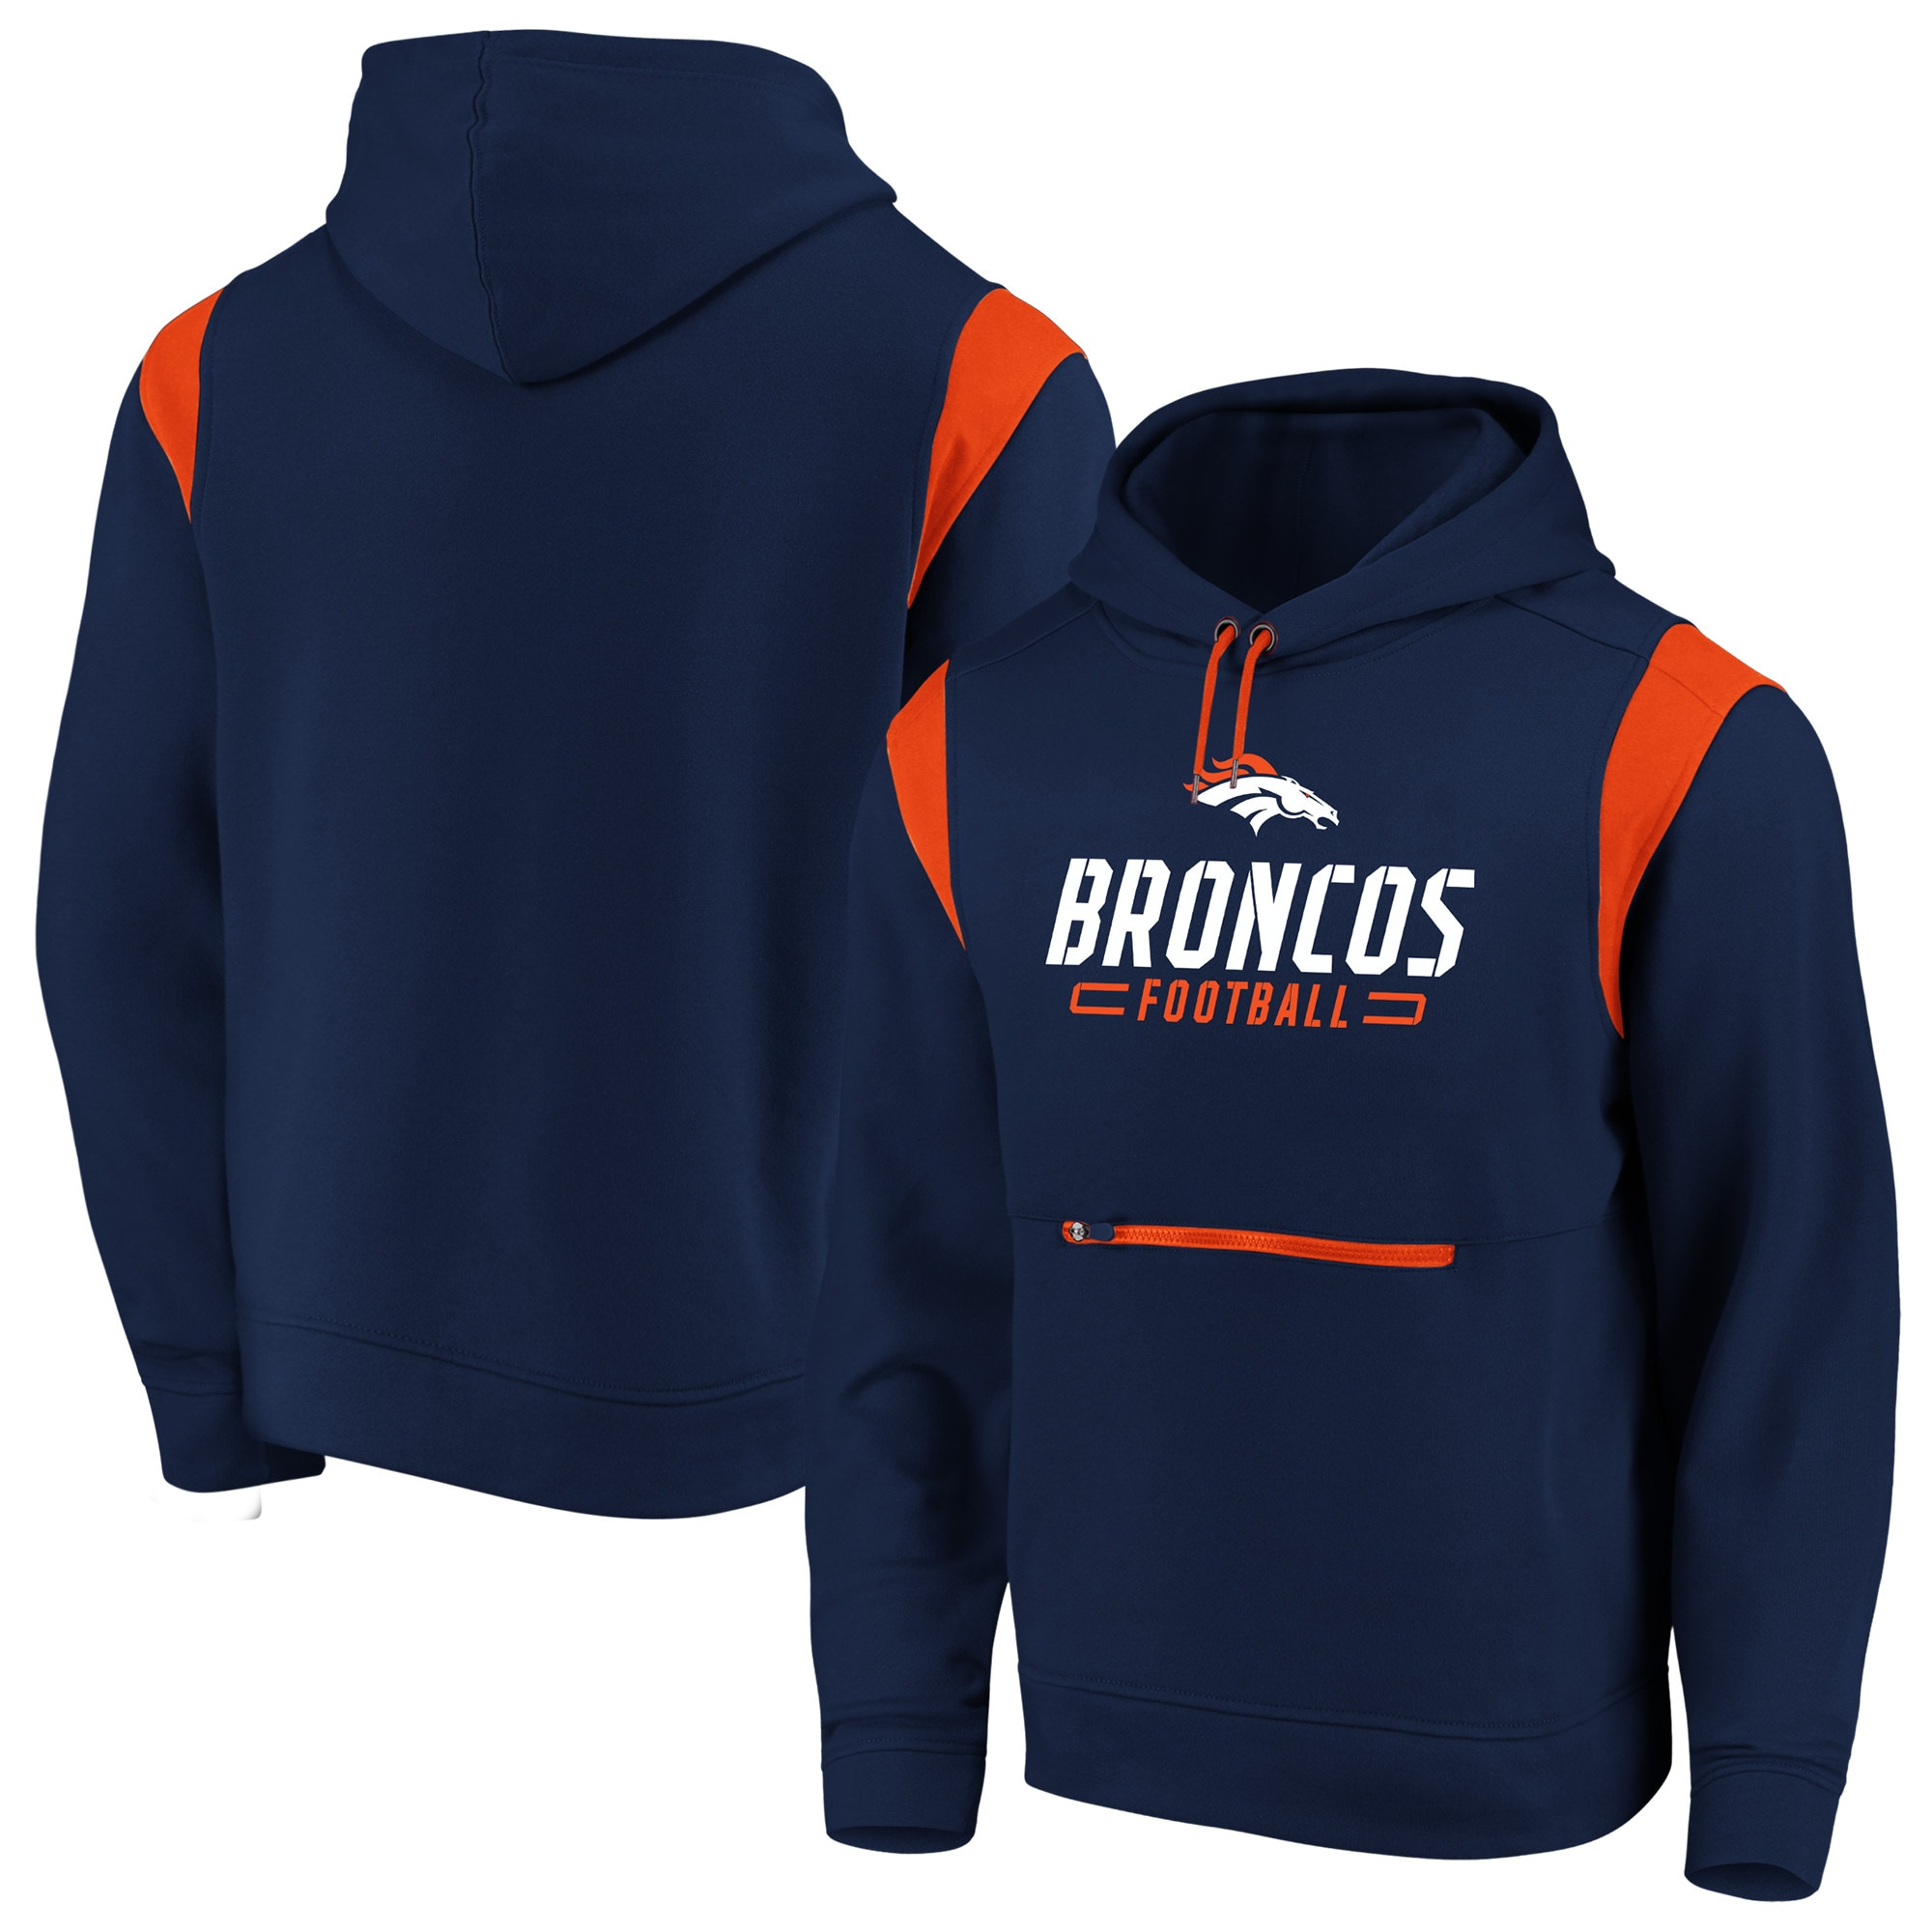 Denver Broncos NFL Pro Line by Fanatics Branded Big & Tall Iconic Overdrive Pullover Hoodie - Navy/Orange